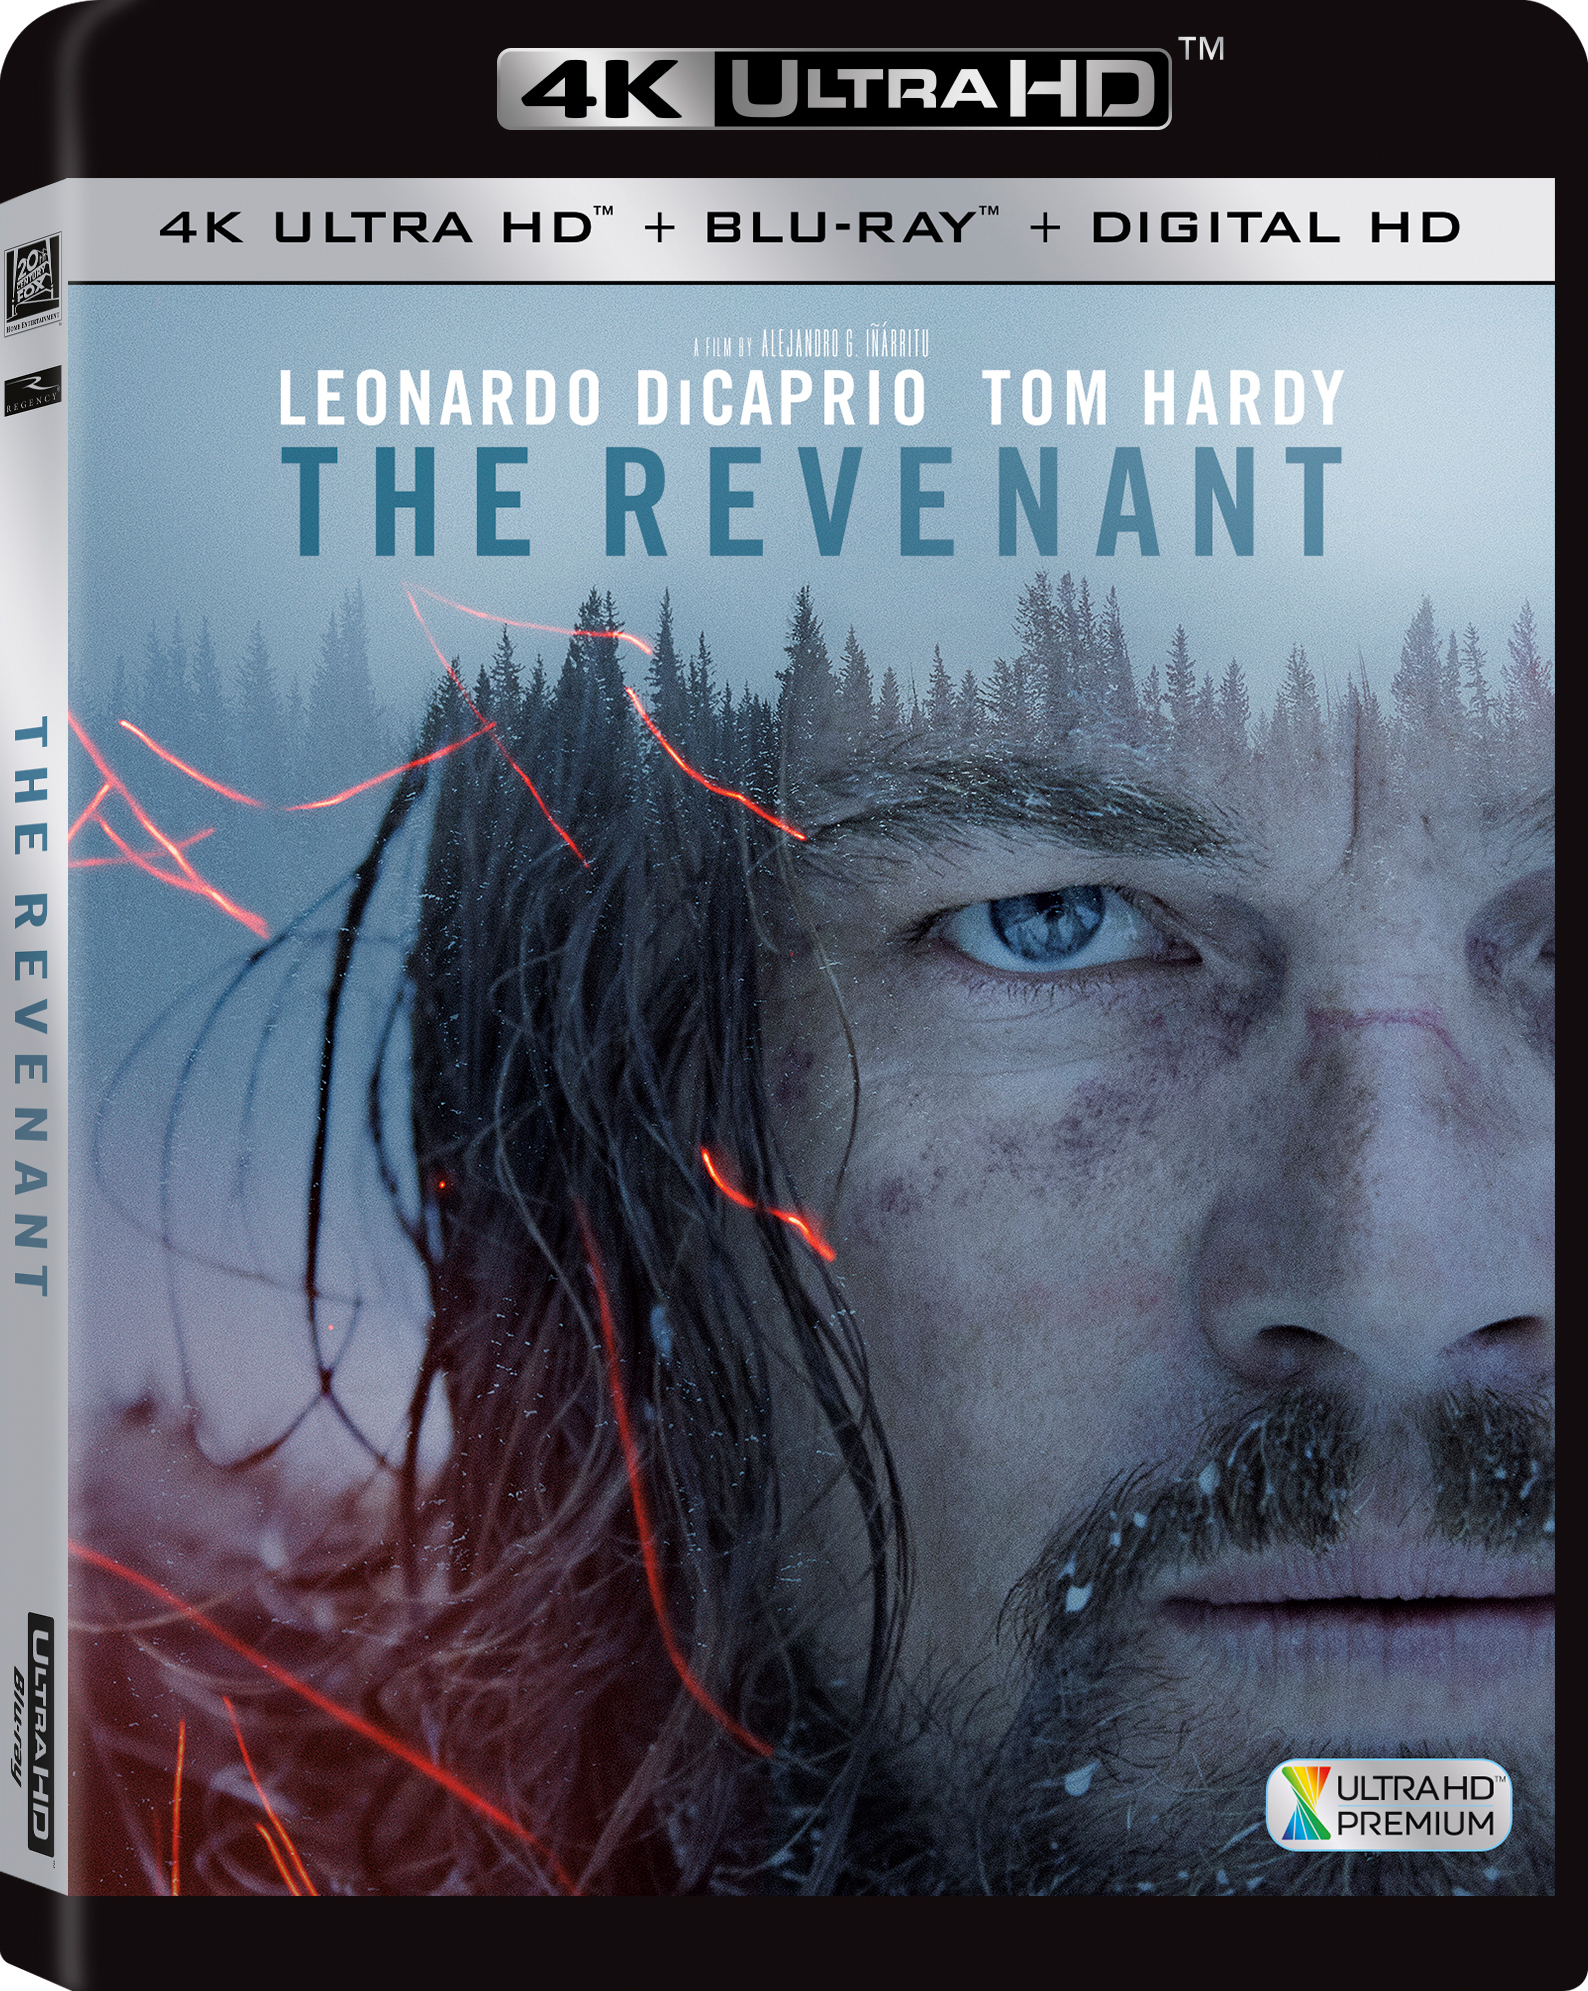 The Revenant (2015) 4K Ultra HD Blu-ray